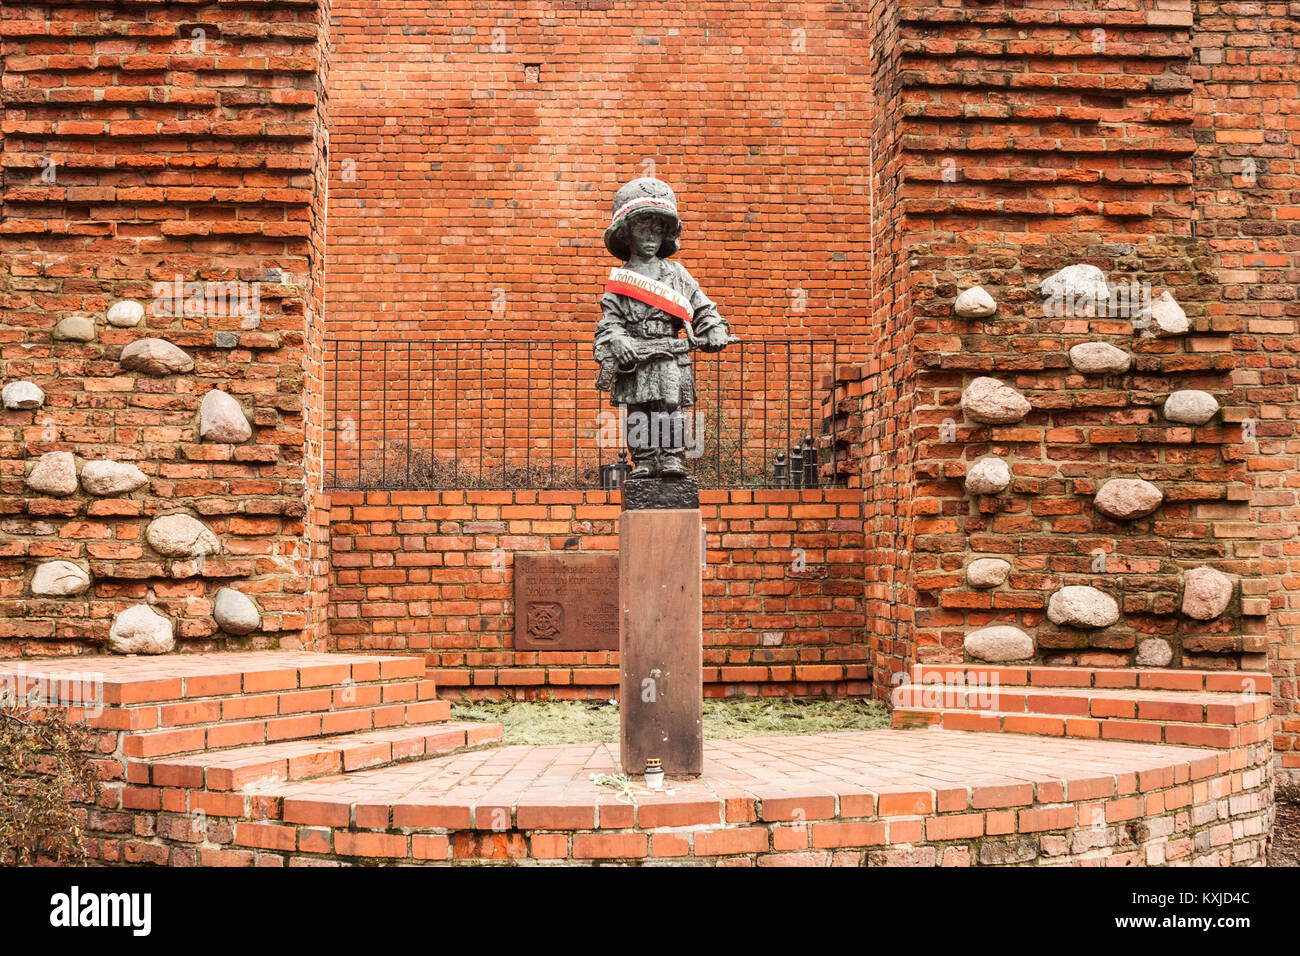 Warsaw, Poland - February 23, 2017: Monument to the Little Insurgent commemorating child soldiers who took part Stock Photo